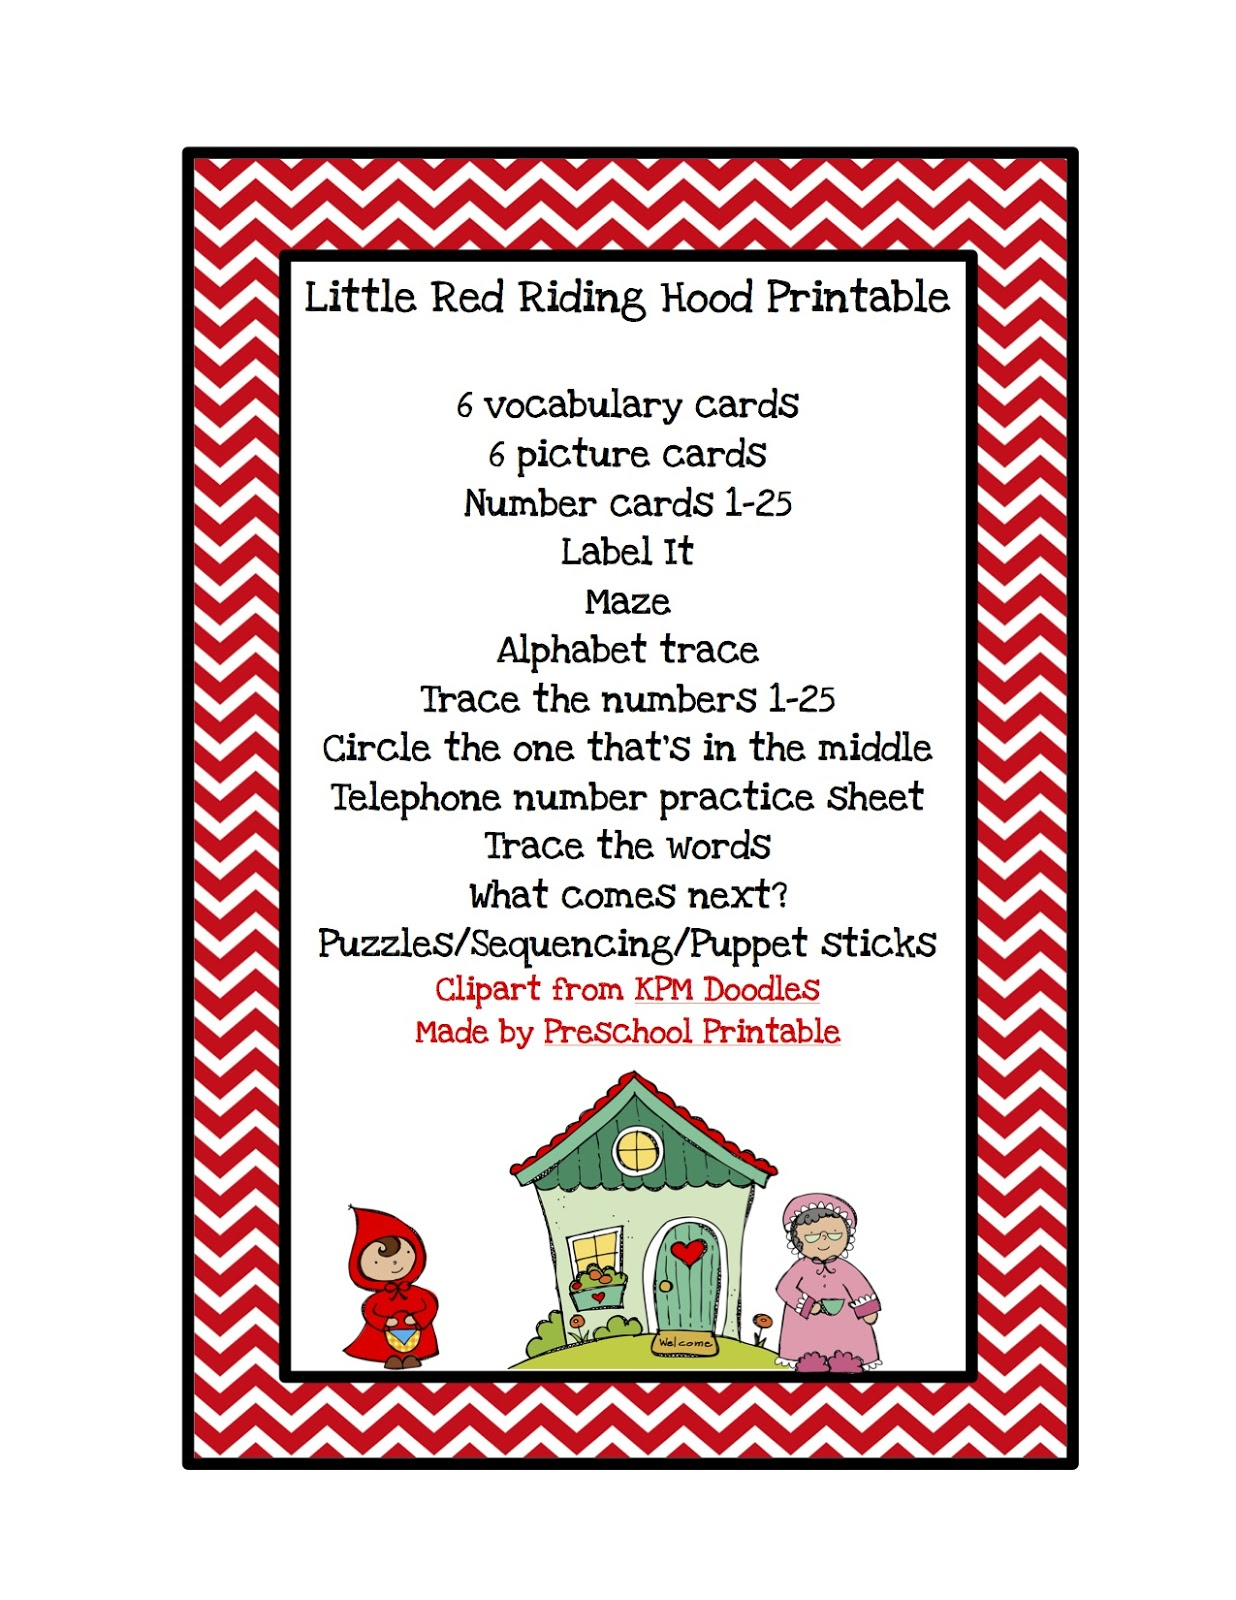 Little Red Riding Hood Printable Preschool Printables